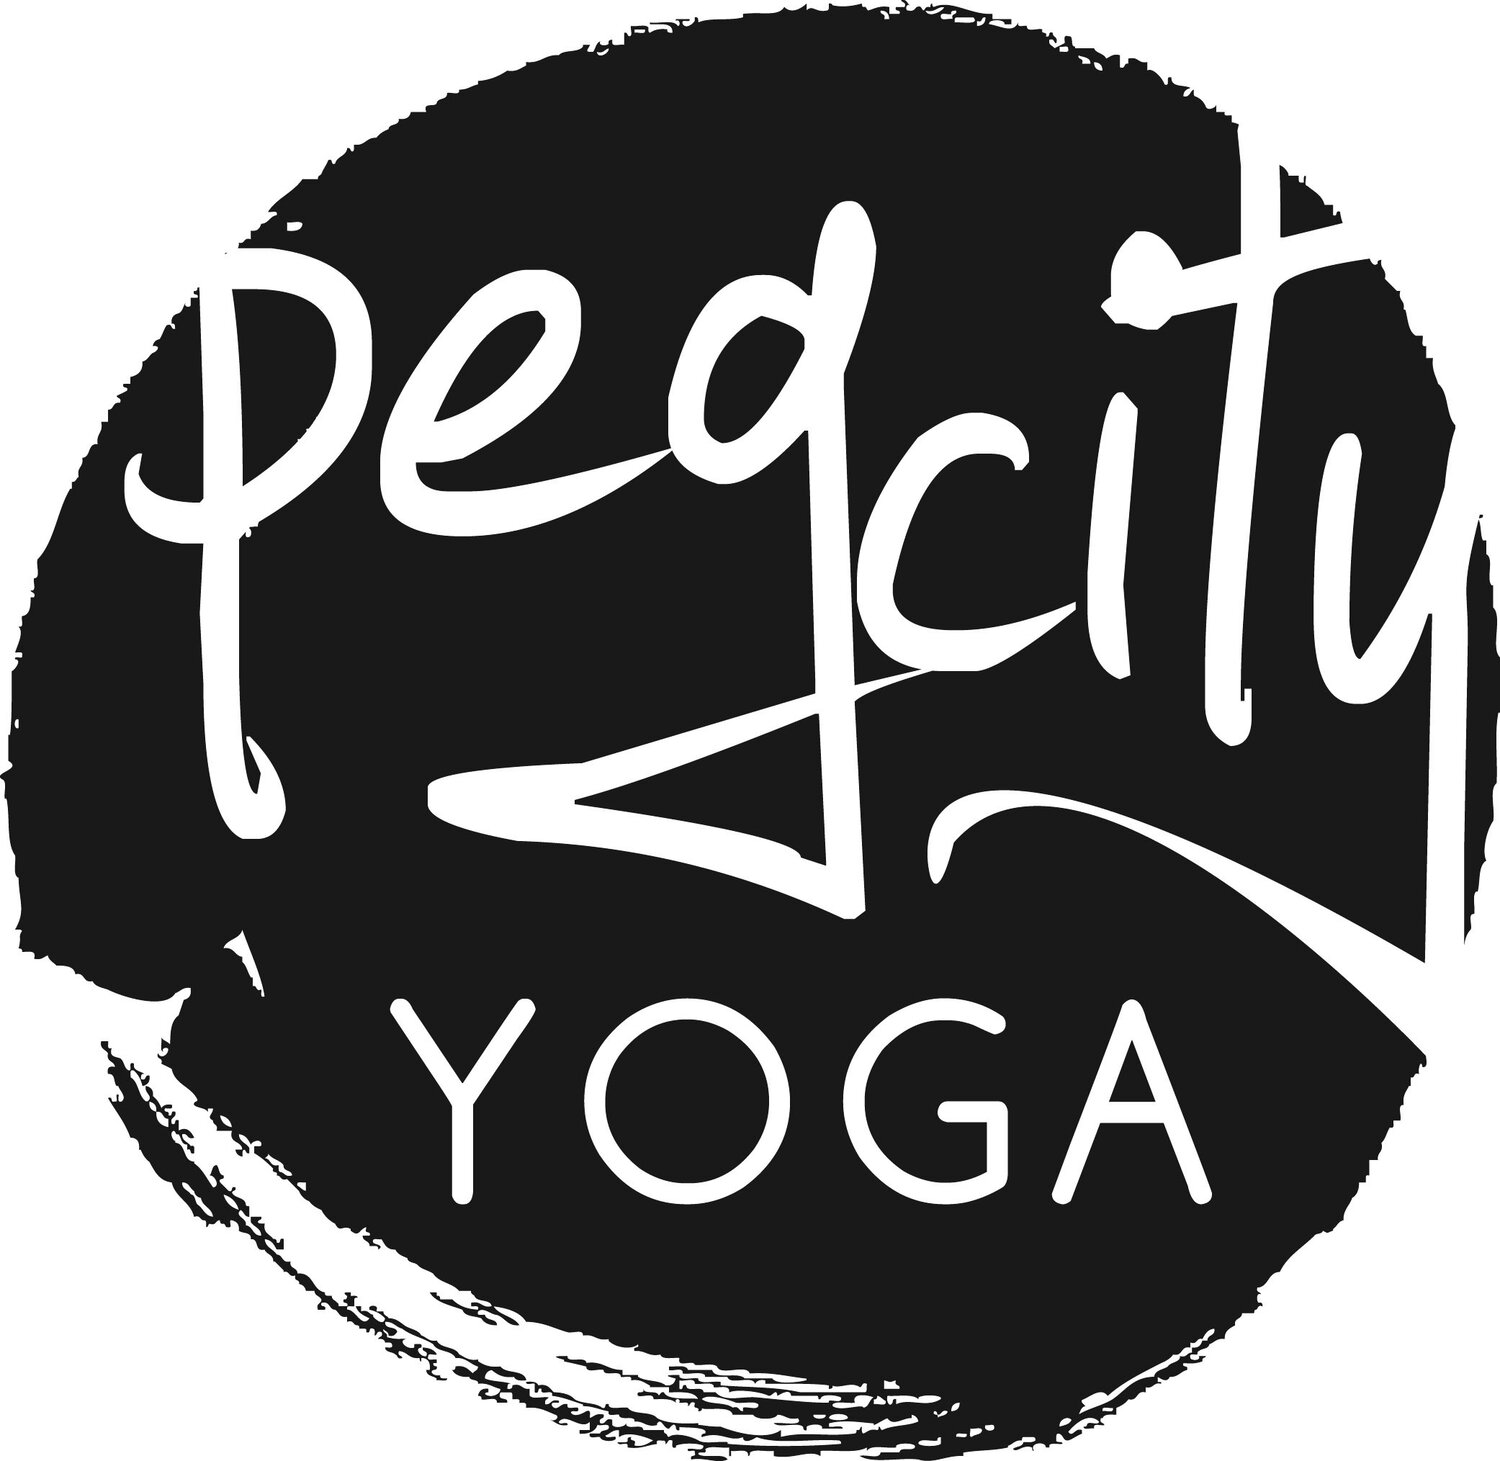 Peg City Yoga